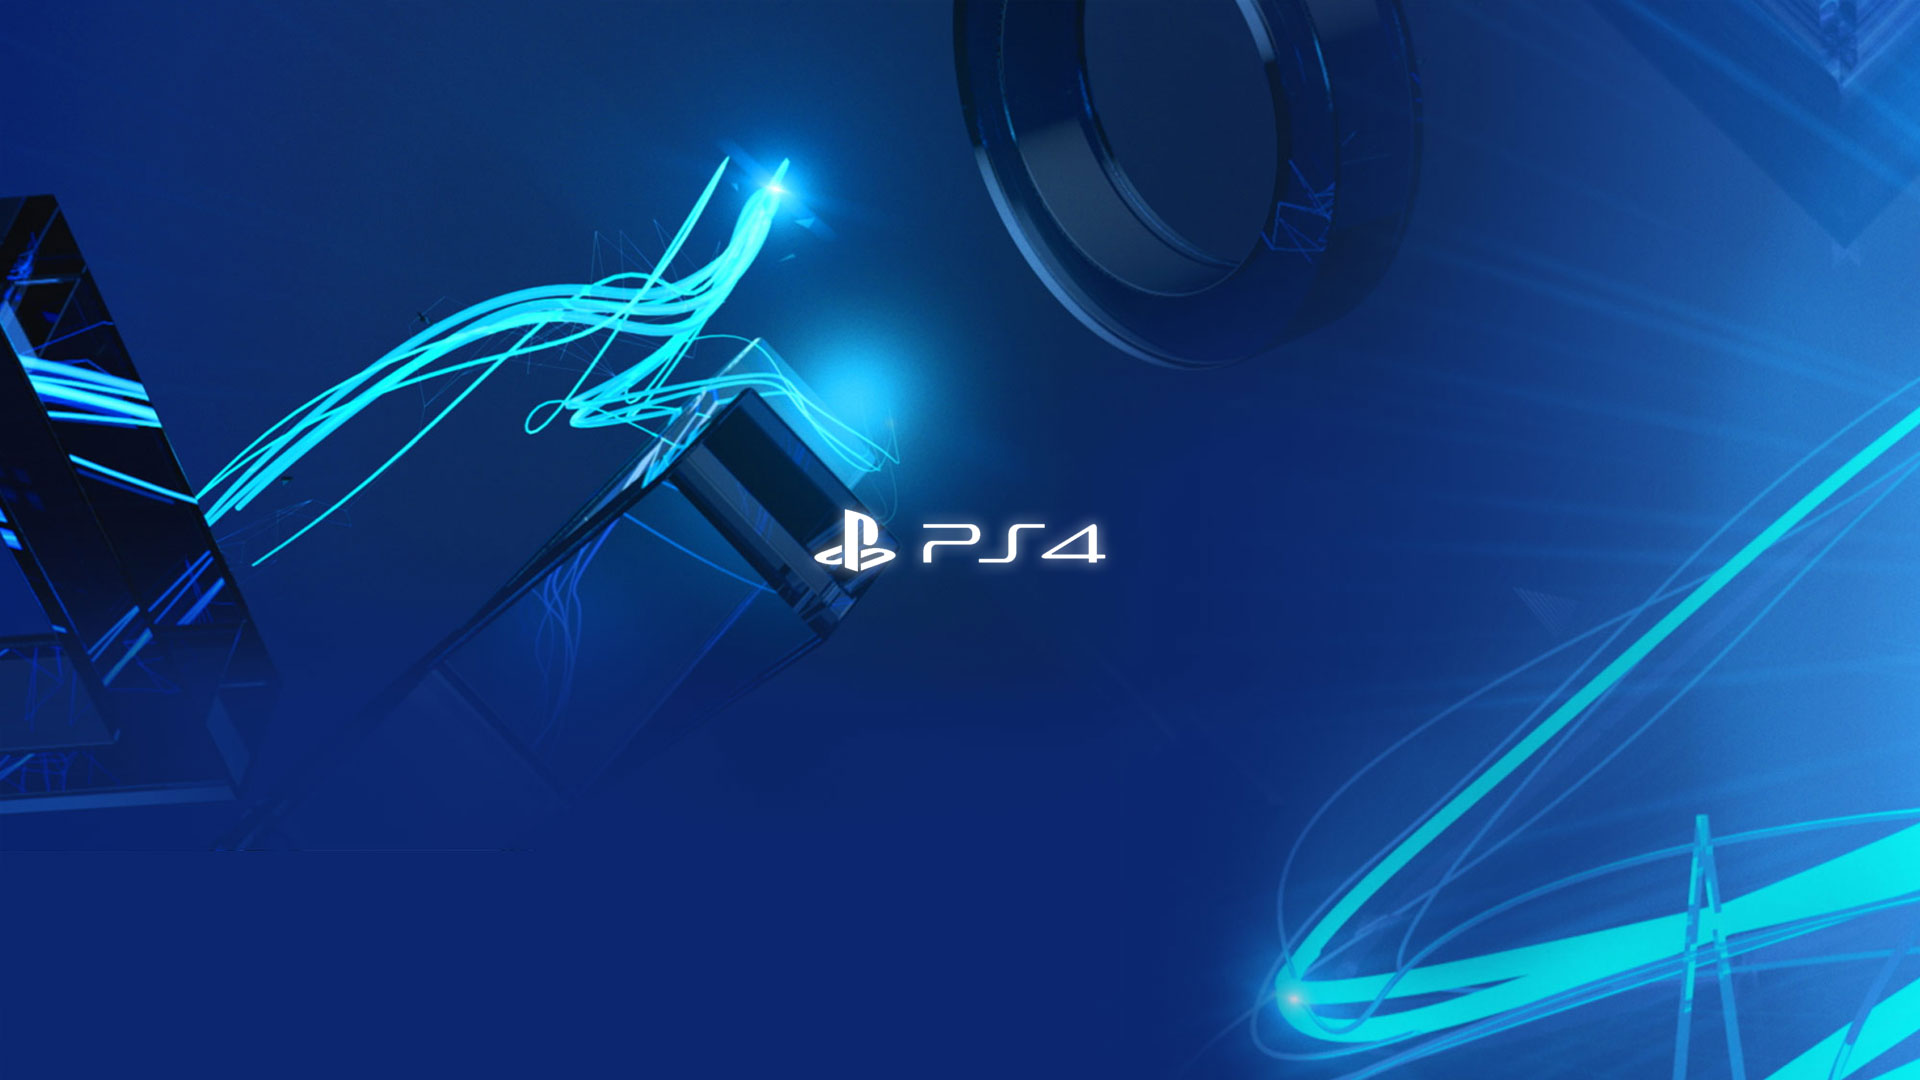 Sony playstation 4 wallpapers pictures images for Fond ecran ps4